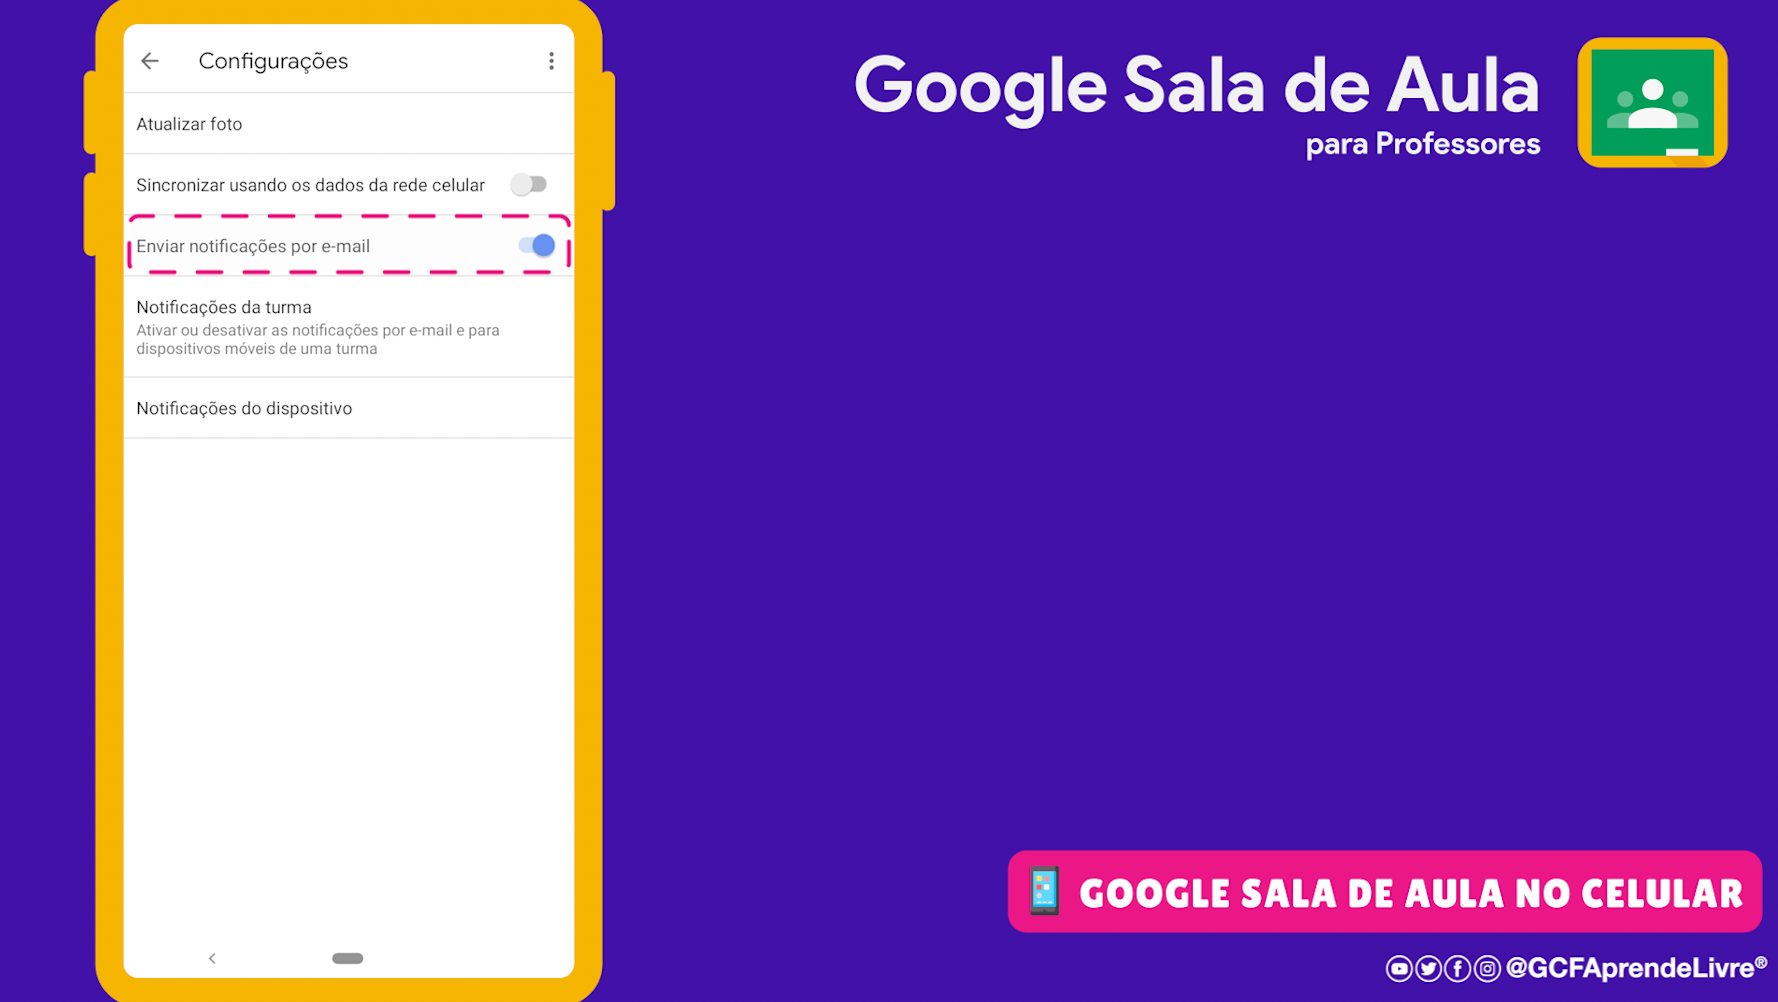 como ativar ou desativar as notificações por email do Google Sala de Aula